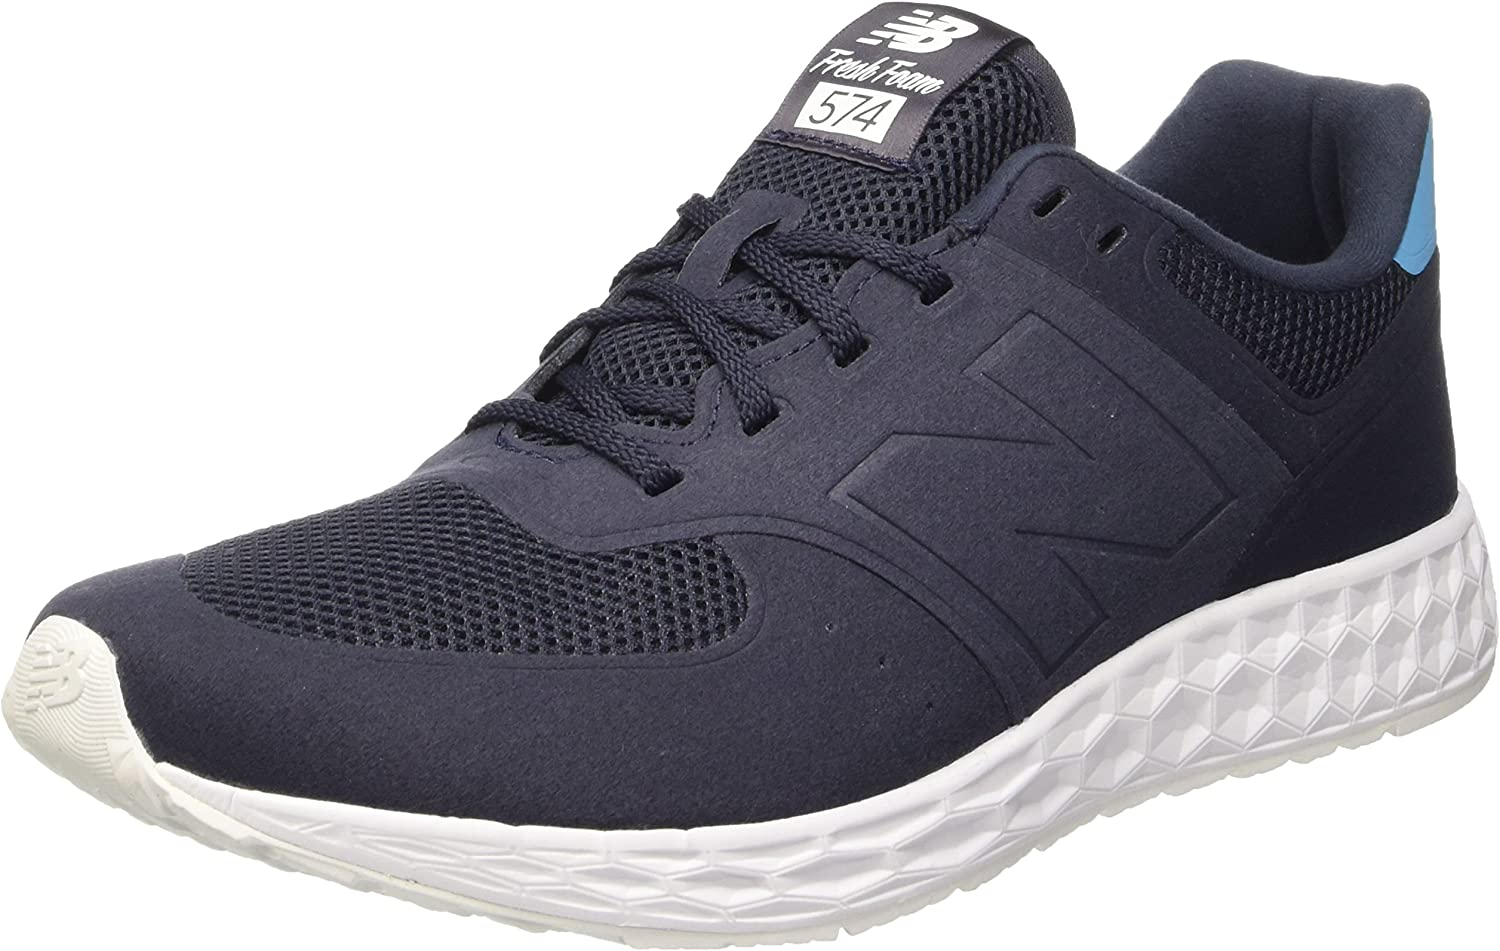 New Balance Nbmfl574nb, Men's Sport shoes